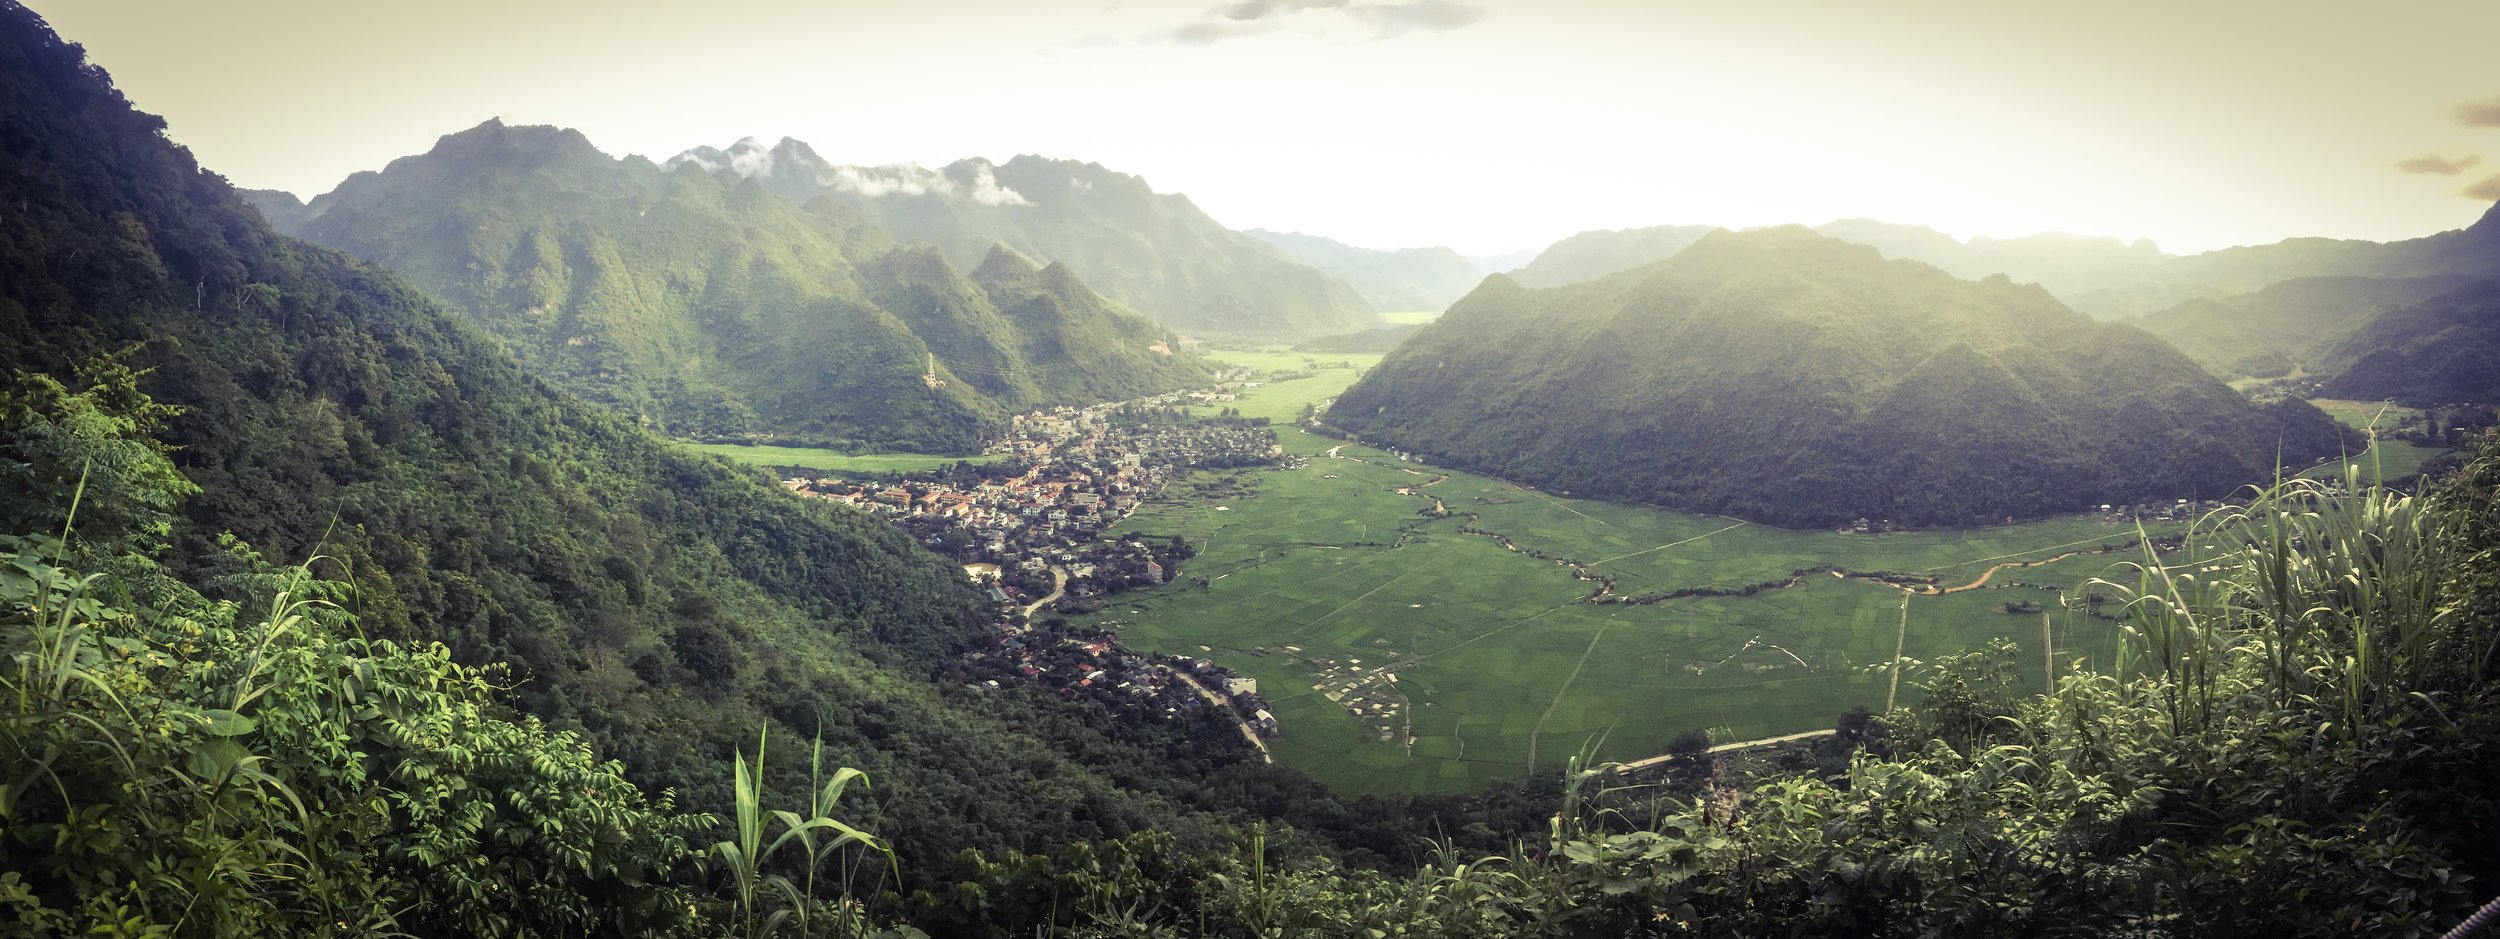 what a view!! Mai Chau from the final descent